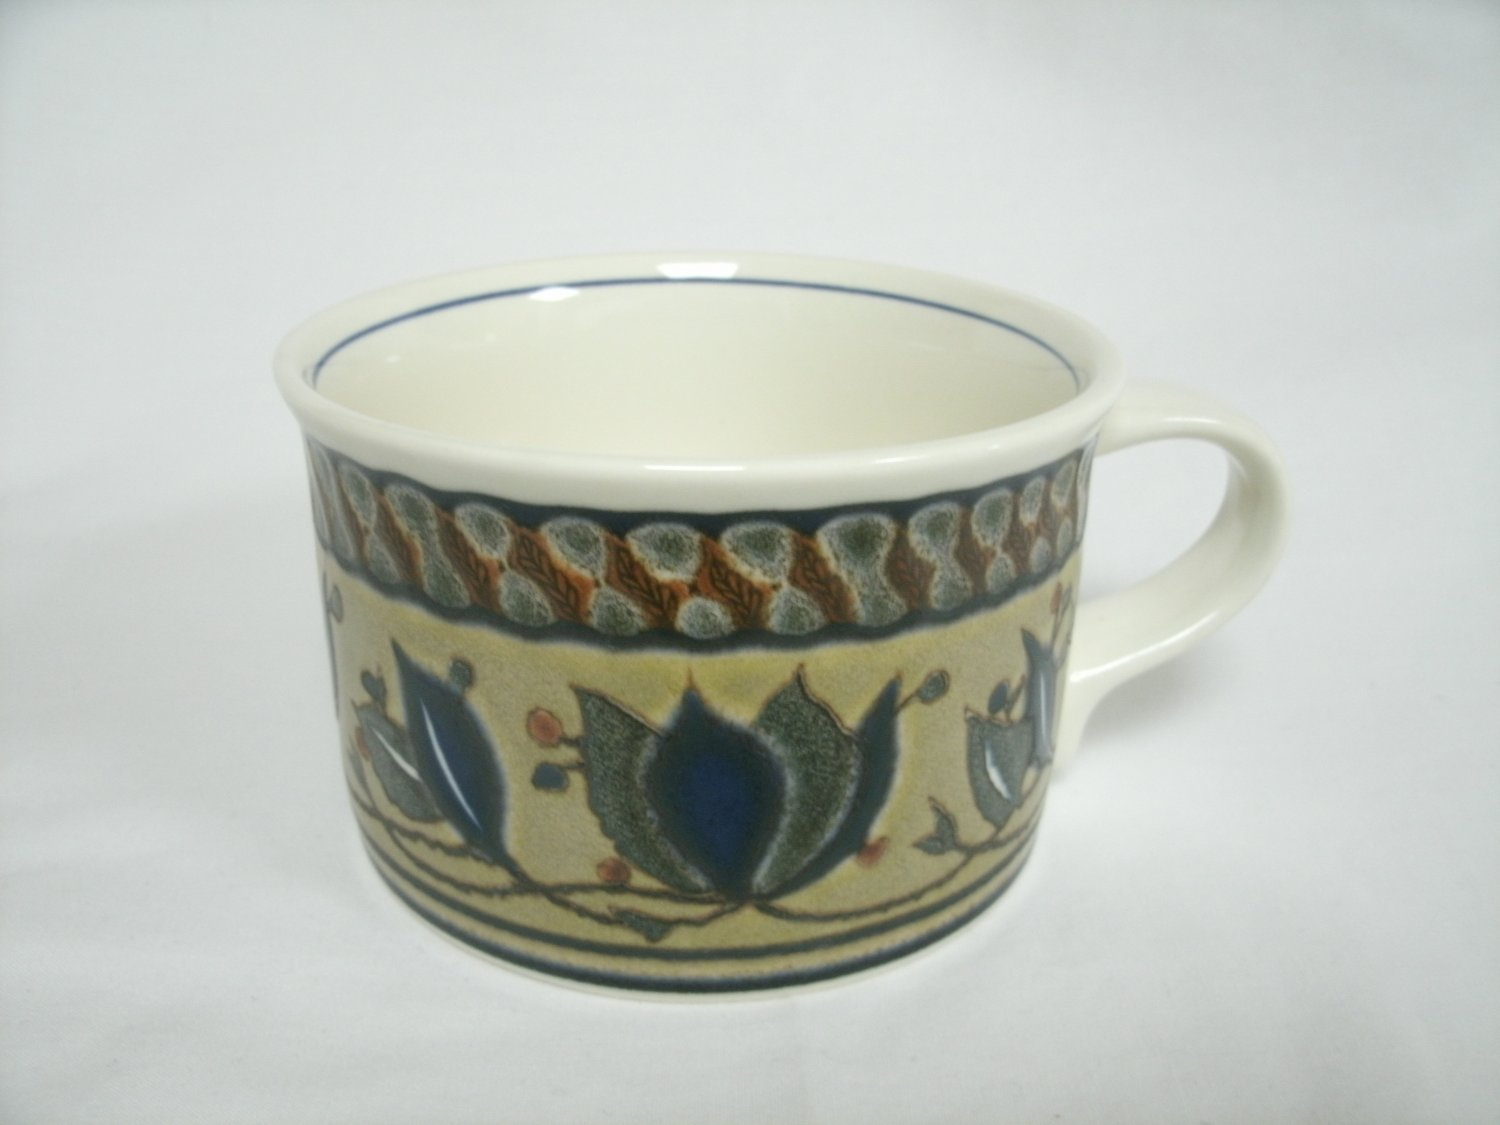 Mikasa Intaglio Arabella Coffee Cup Beige and Blue Colors Stoneware With Leaf Design 3 1/2 Inches